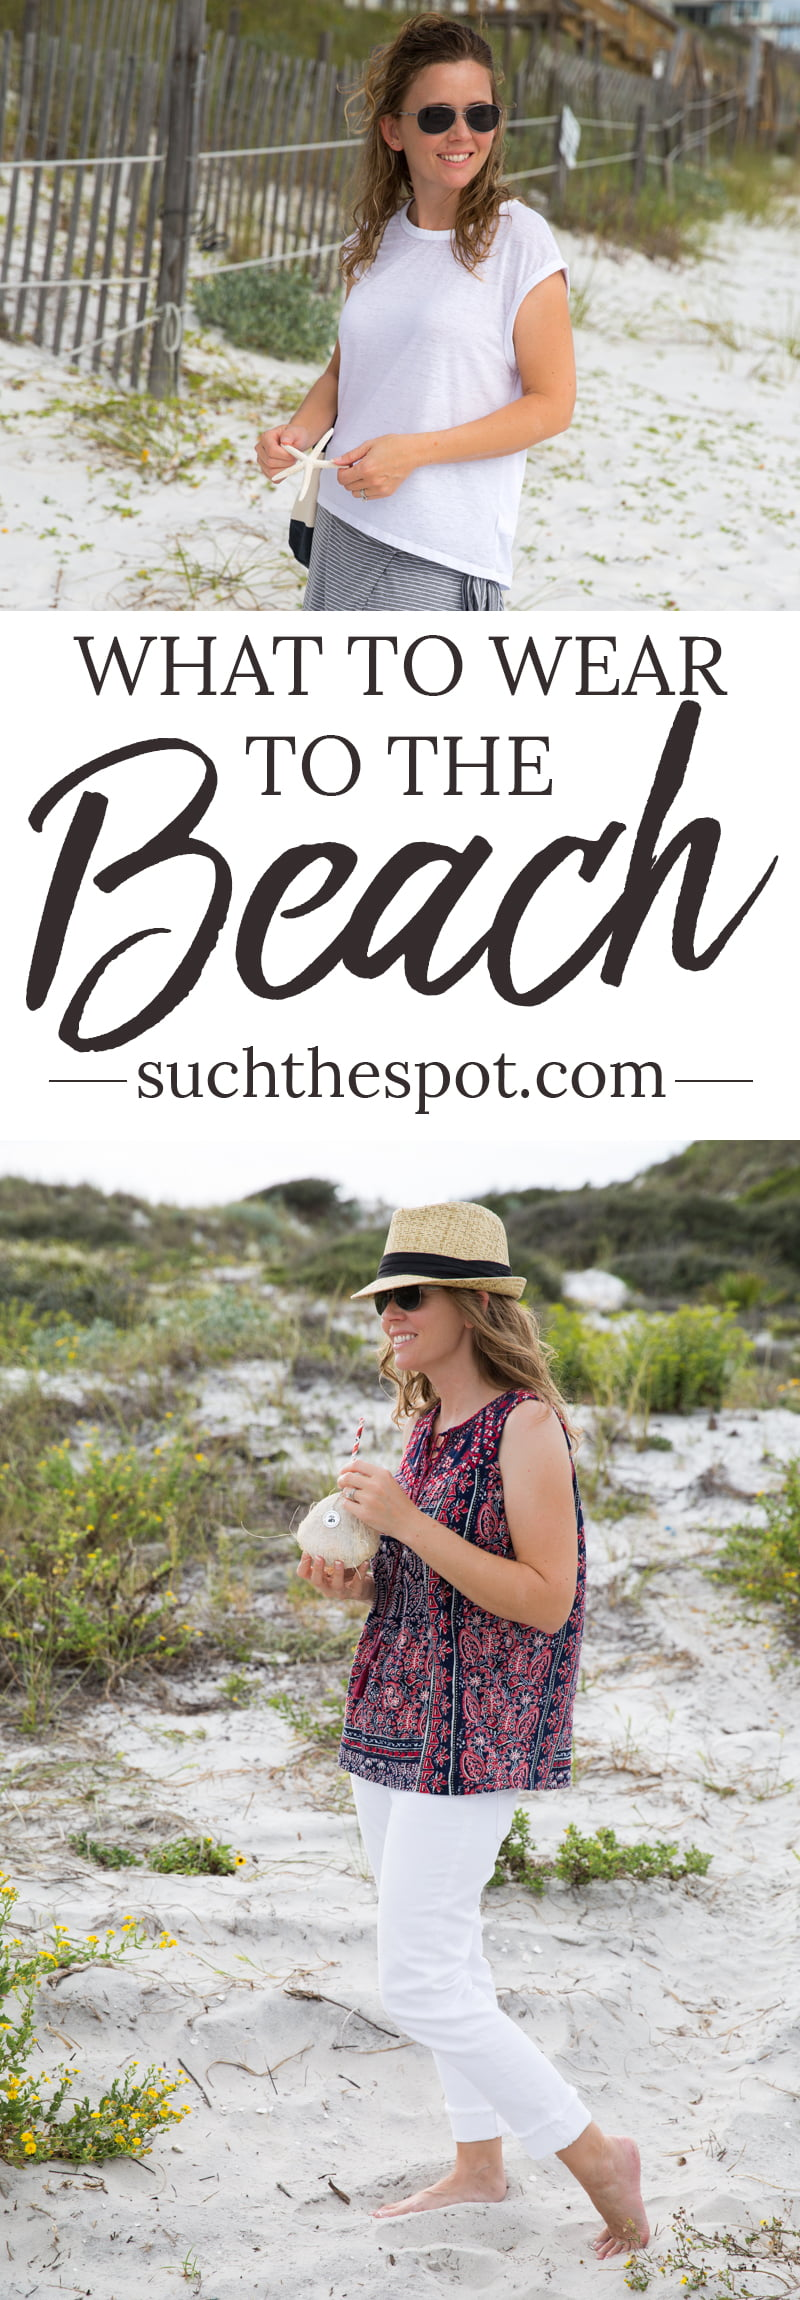 Beach fashion is made super simple with these beach trip outfit ideas. These cute and casual looks are sure to inspire your next beach vacation packing list.